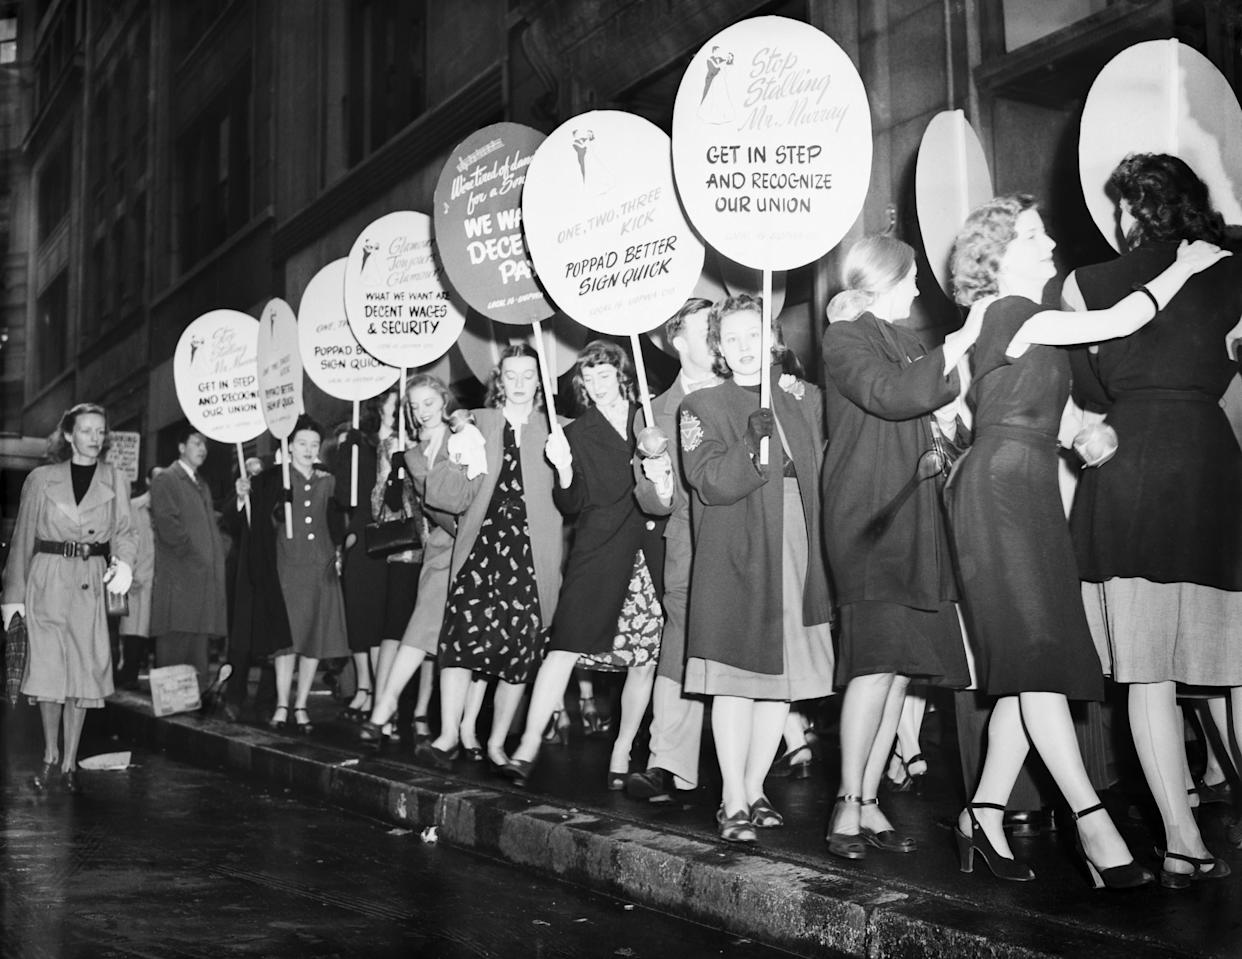 Employees of the Arthur Murray Dance Studios picket in a conga line before the dance studio offices today, May 7 in protest against Murray's alleged refusal to recognize Local 16, United Office and Professional Workers of America, CIO in New York on May 7, 1947.